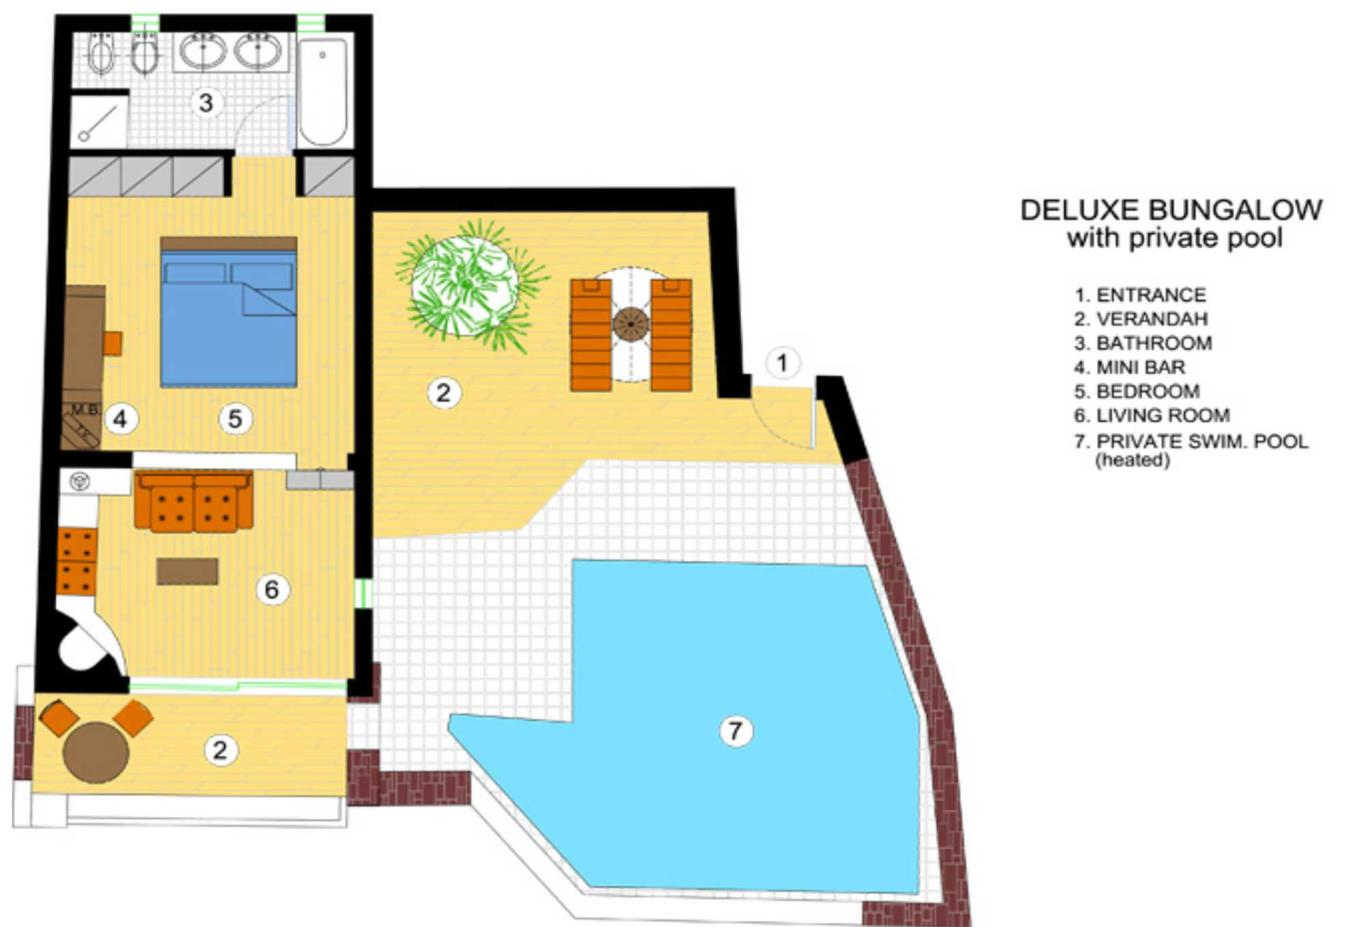 Deluxe Bungalow with Private Pool floorplan